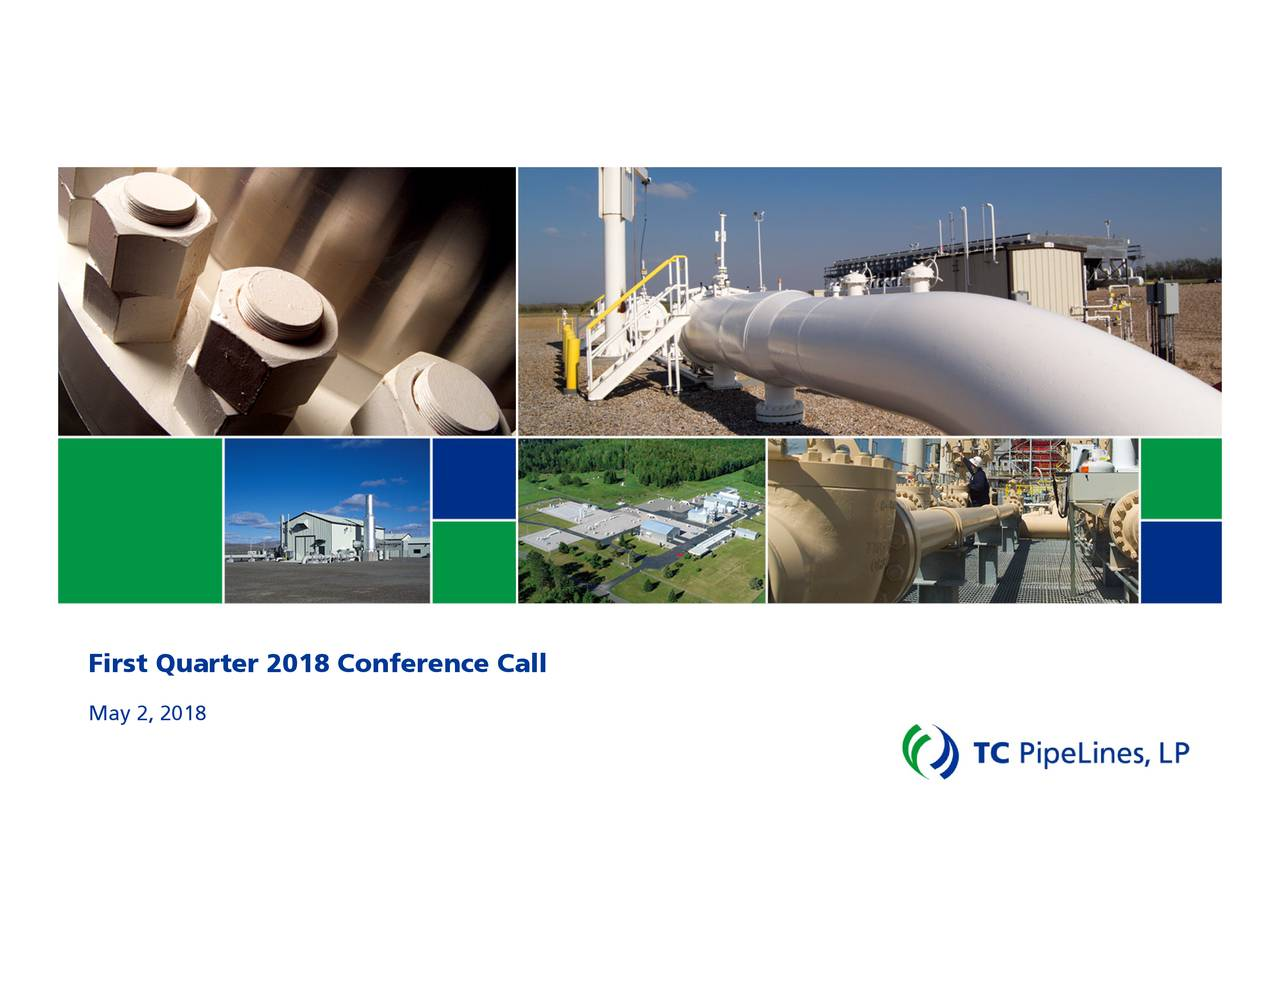 Tc Pipelines Lp 2018 Q1 Results Earnings Call Slides